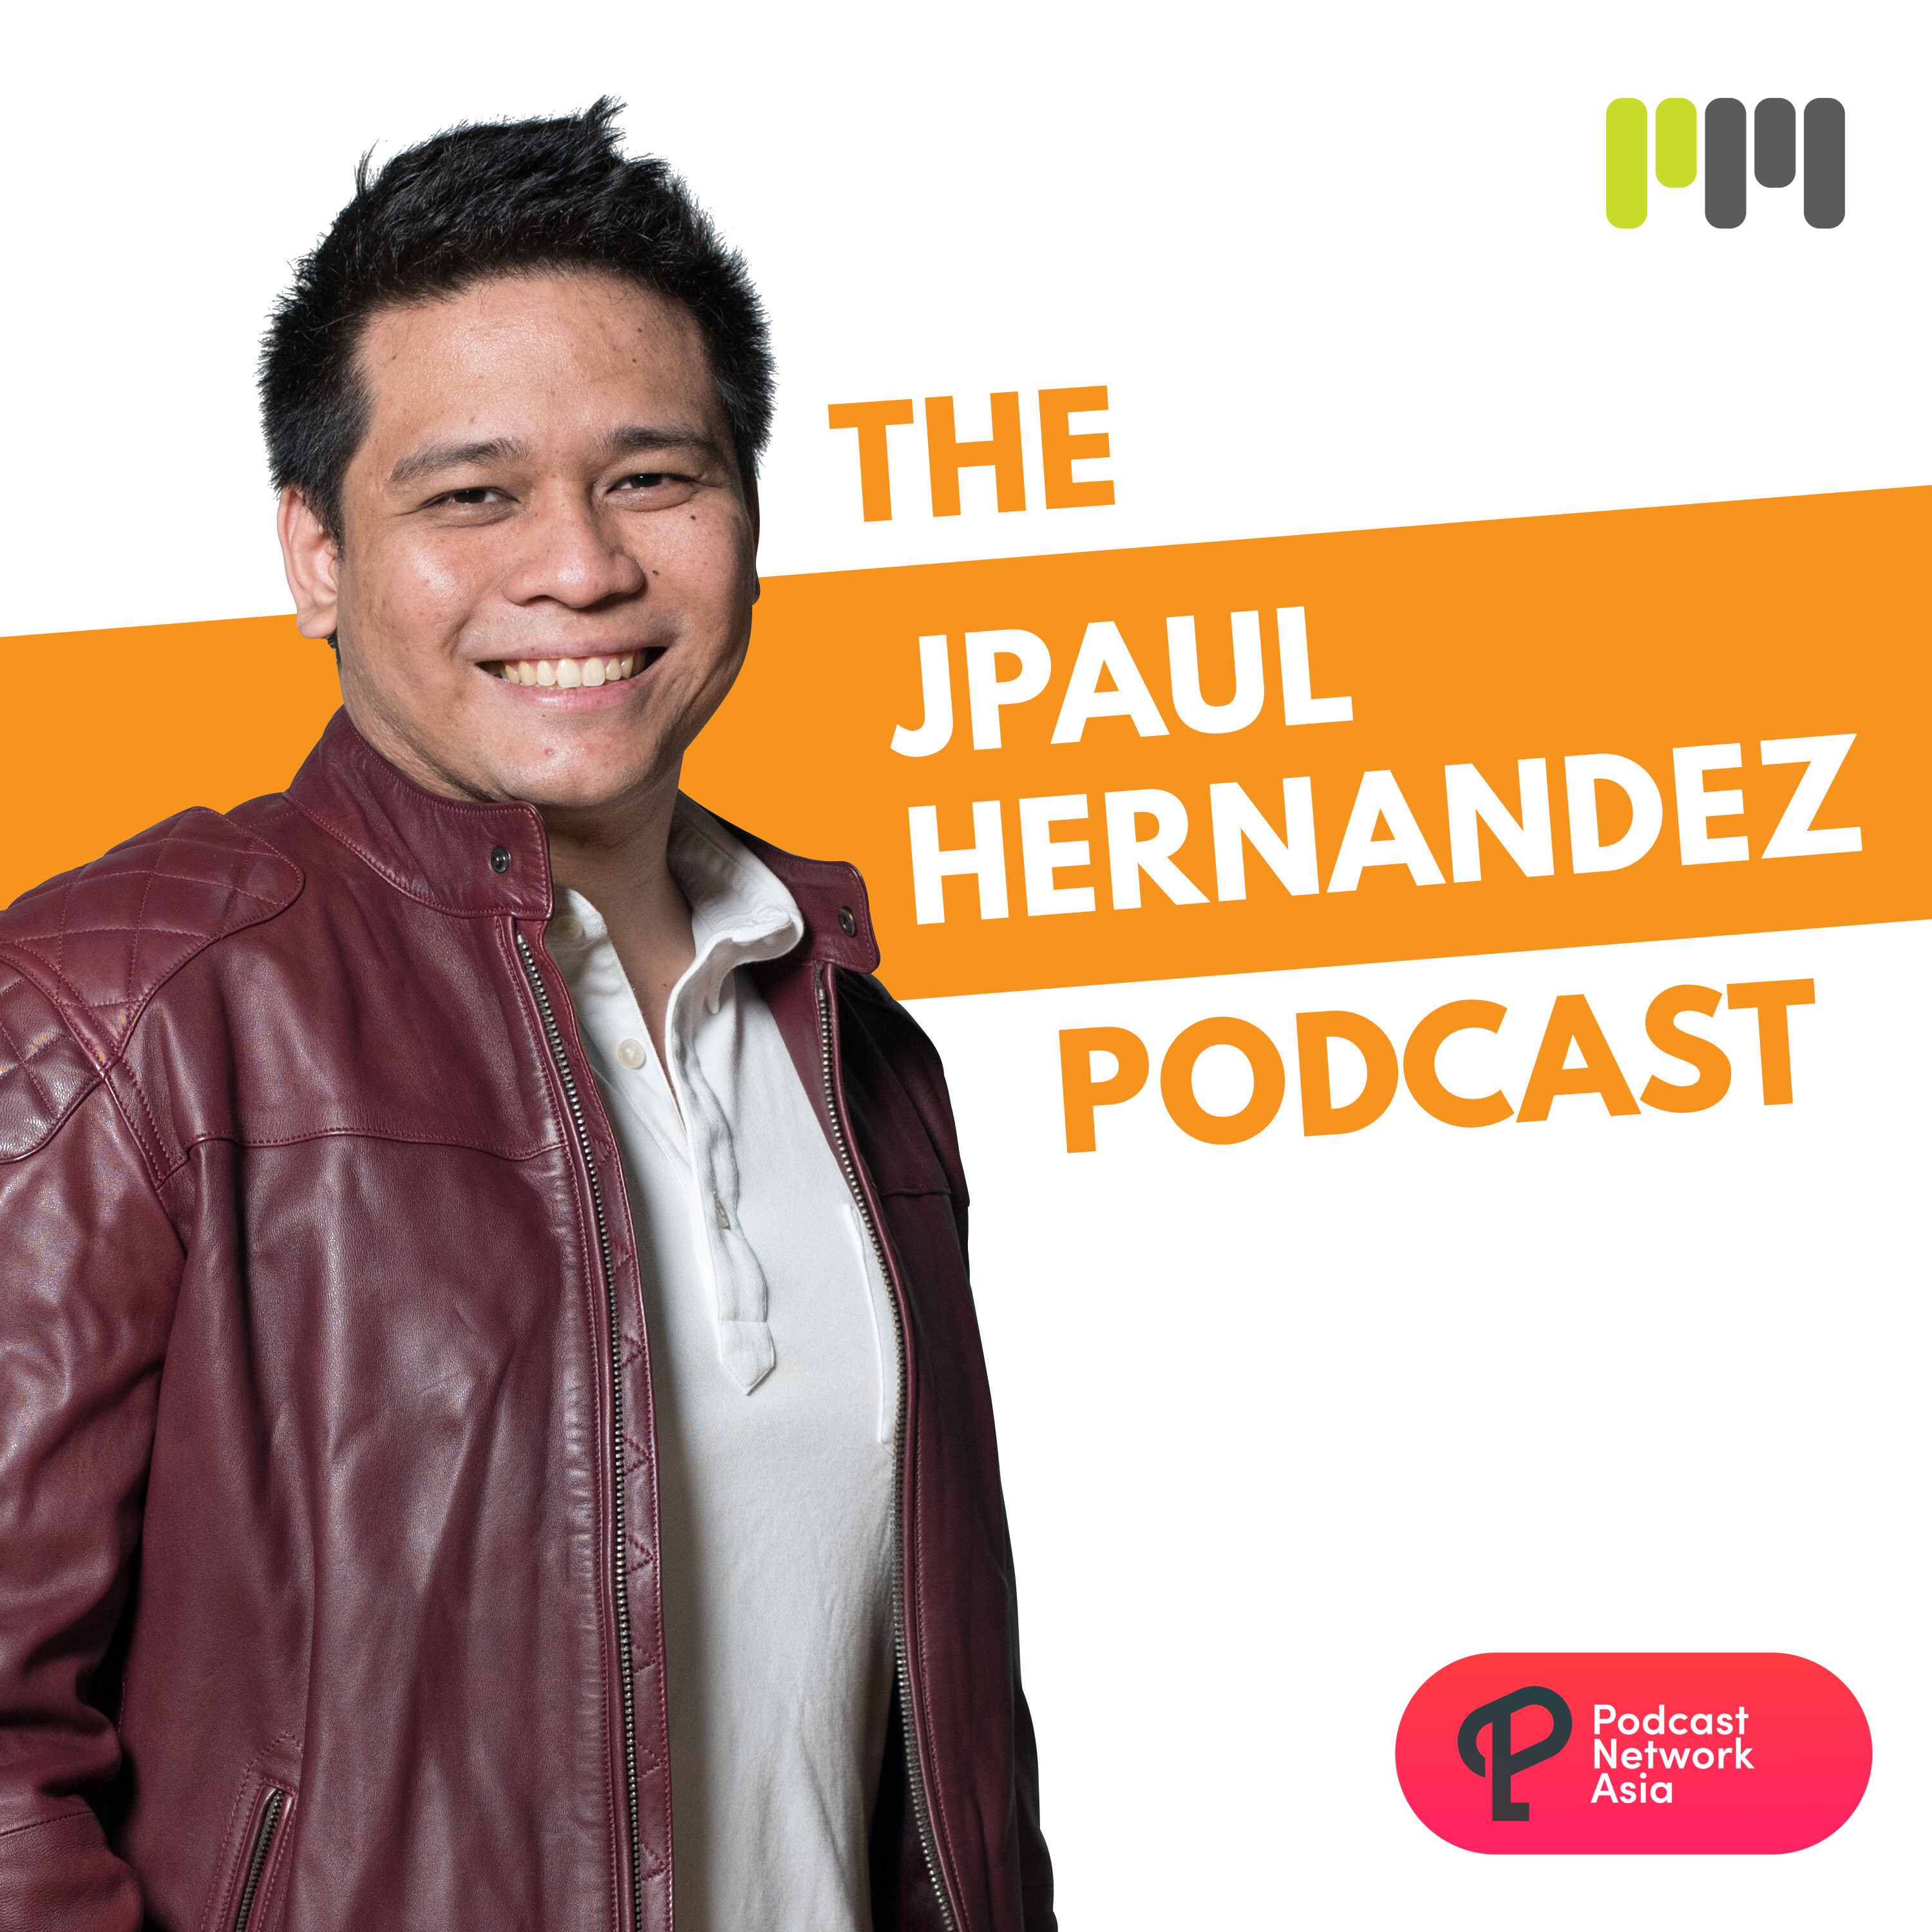 The JPaul Hernandez Podcast